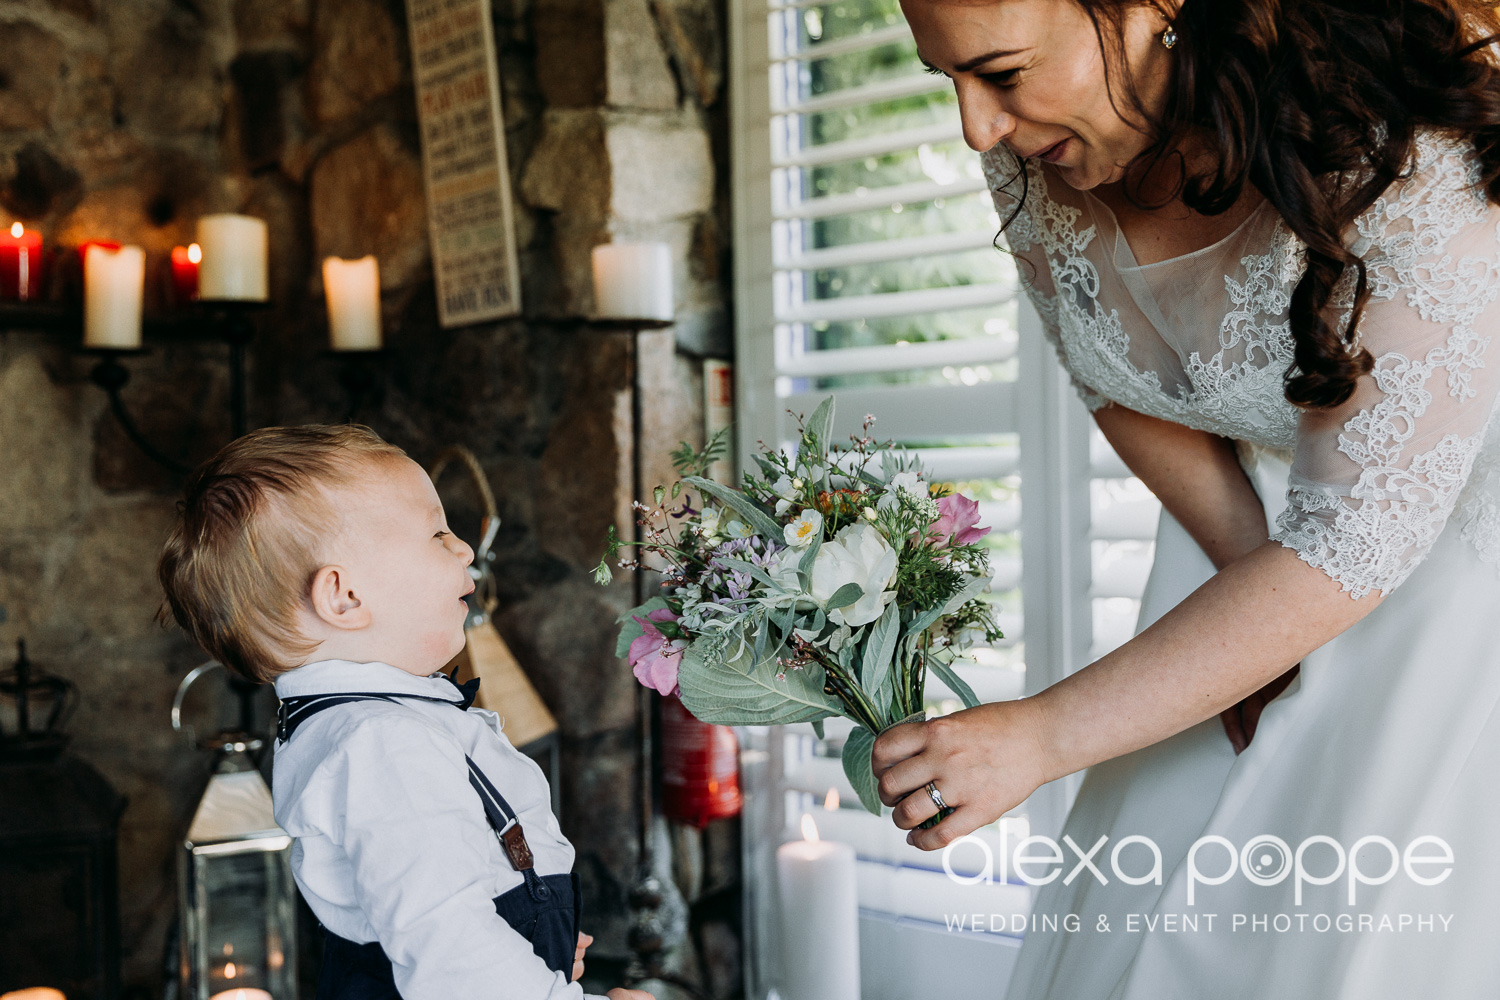 AJ_elopement_lowerbarns_13.jpg